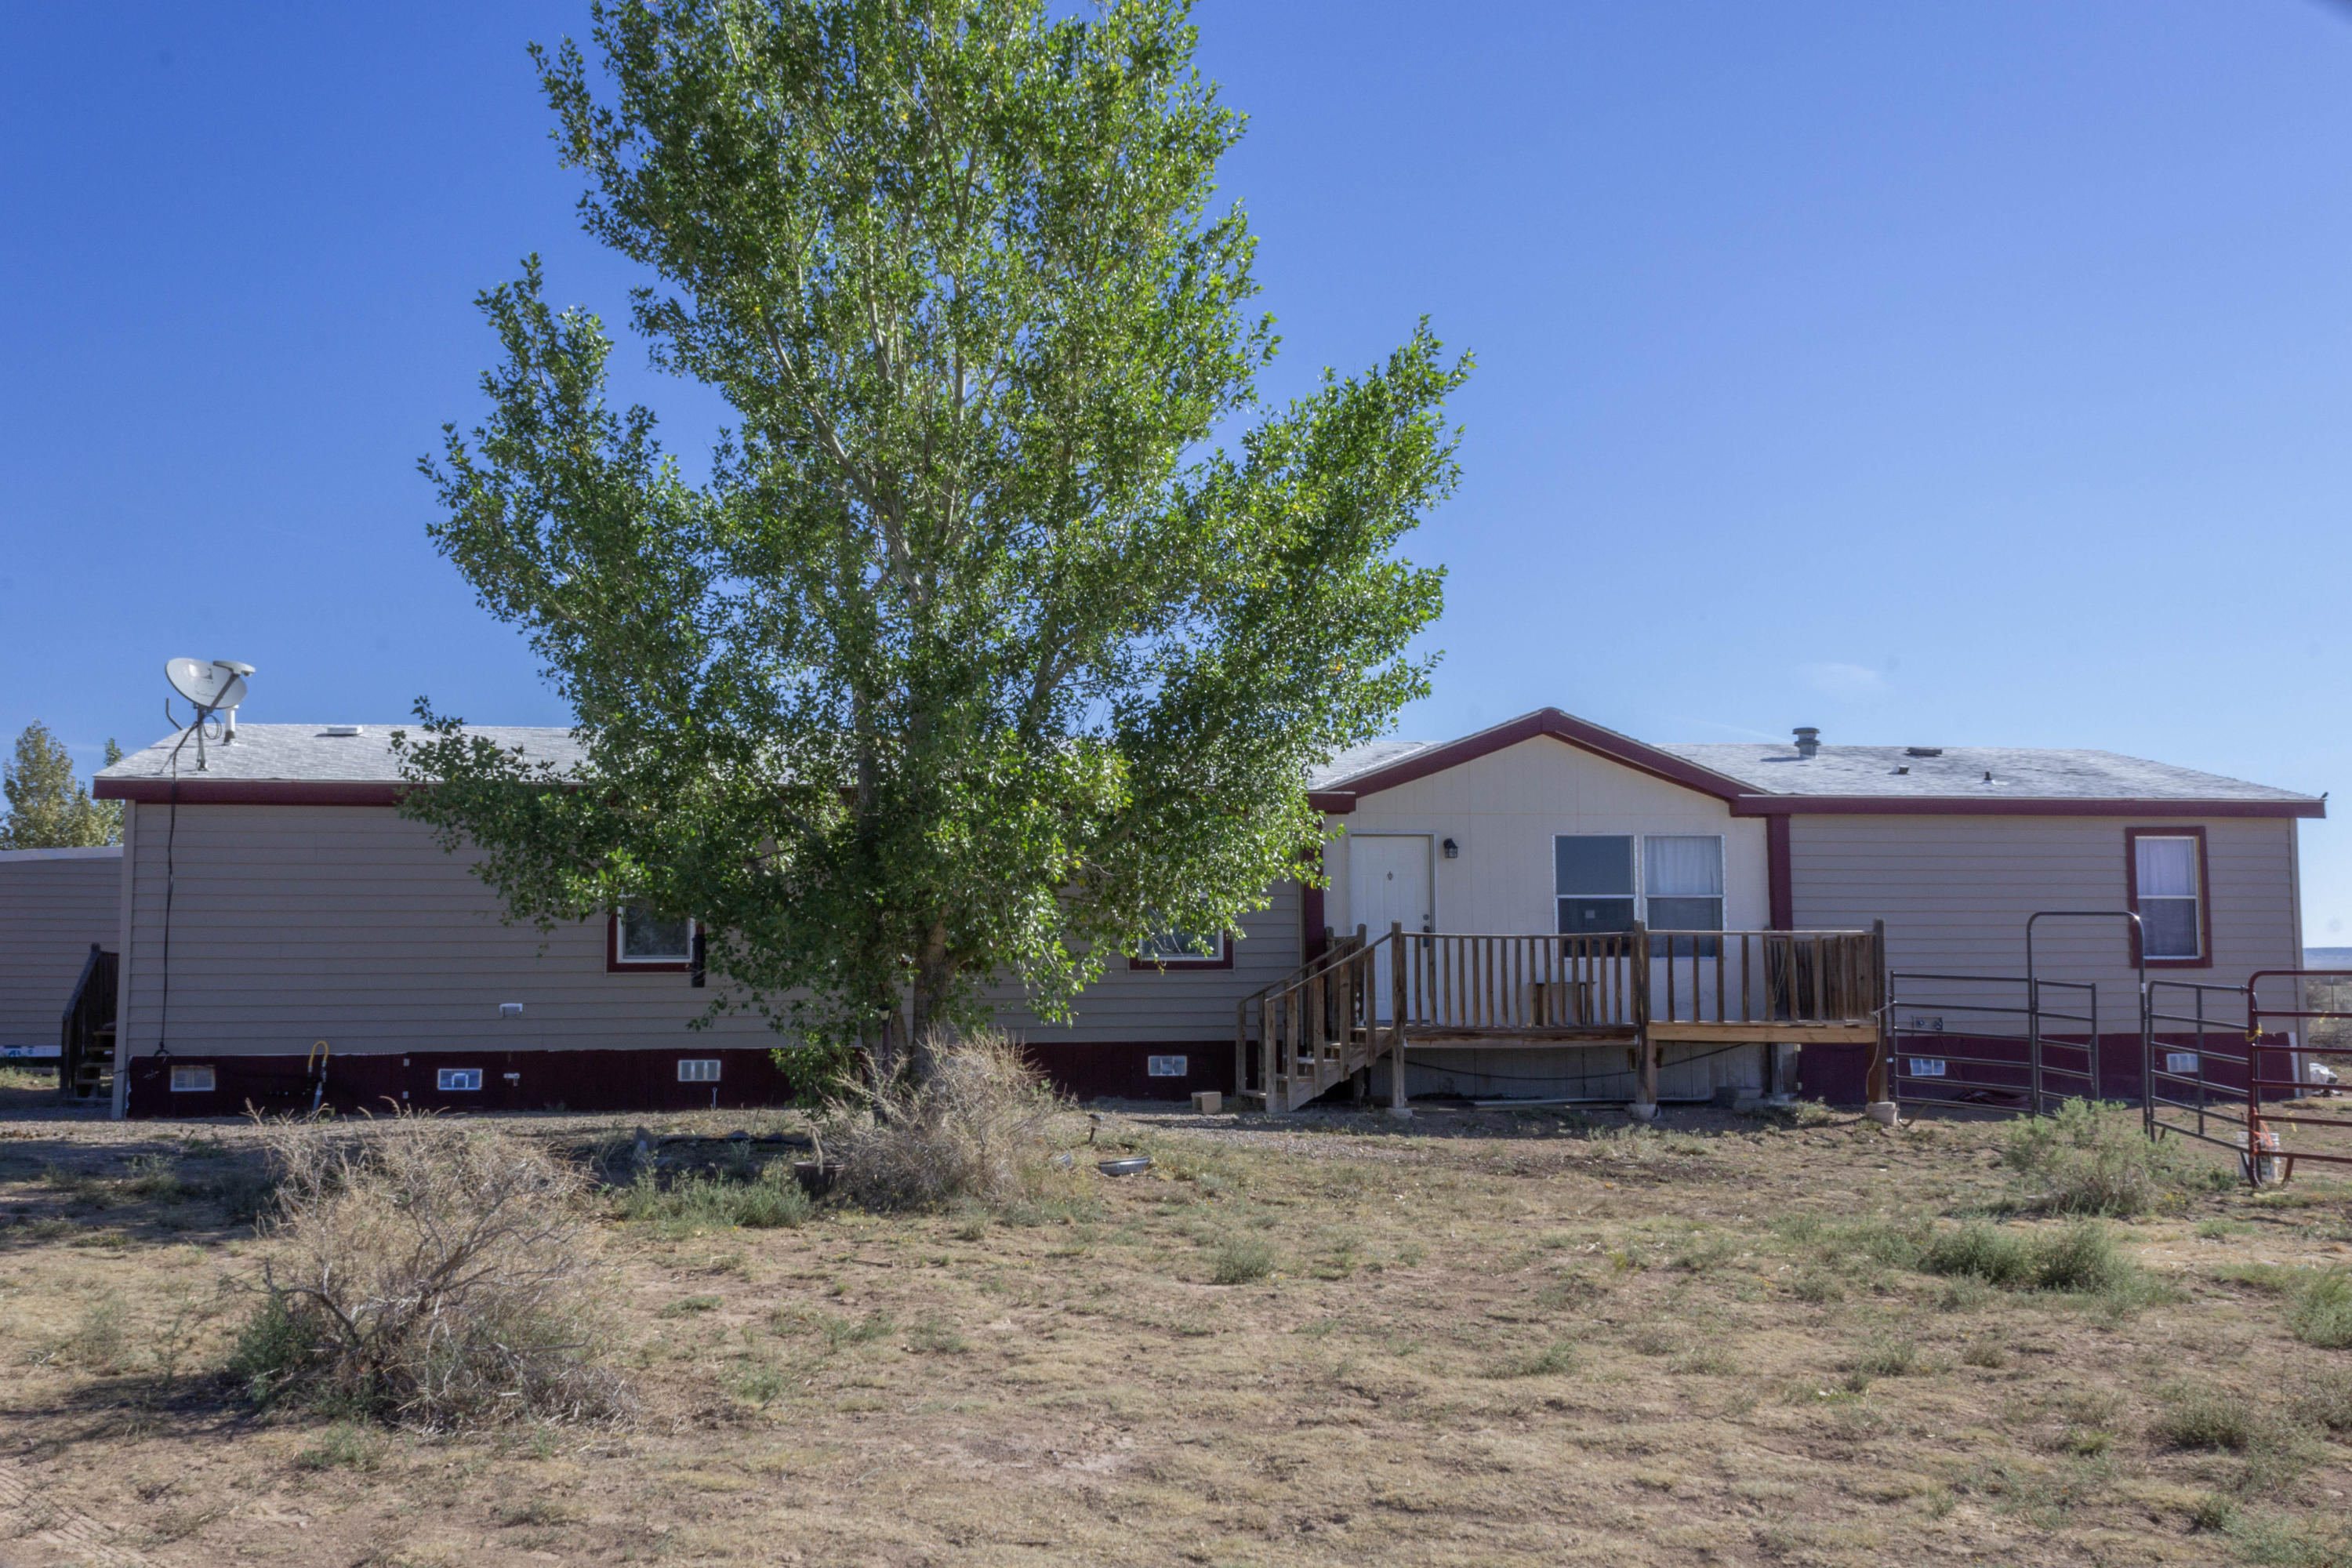 A great deal on an affordable piece of county living!  Large home with a great layout.  Two living areas, huge pantry, office, hobby room, electric fireplace, natural gas, state of the art water filtration system.  Fully fenced 2.5 acres.  Beautiful views to the west as well as out to the east.  This house has had some wonderful recent upgrades and updates and will make an amazing home and potential great horse property on your very own slice of New Mexico's wide open country!